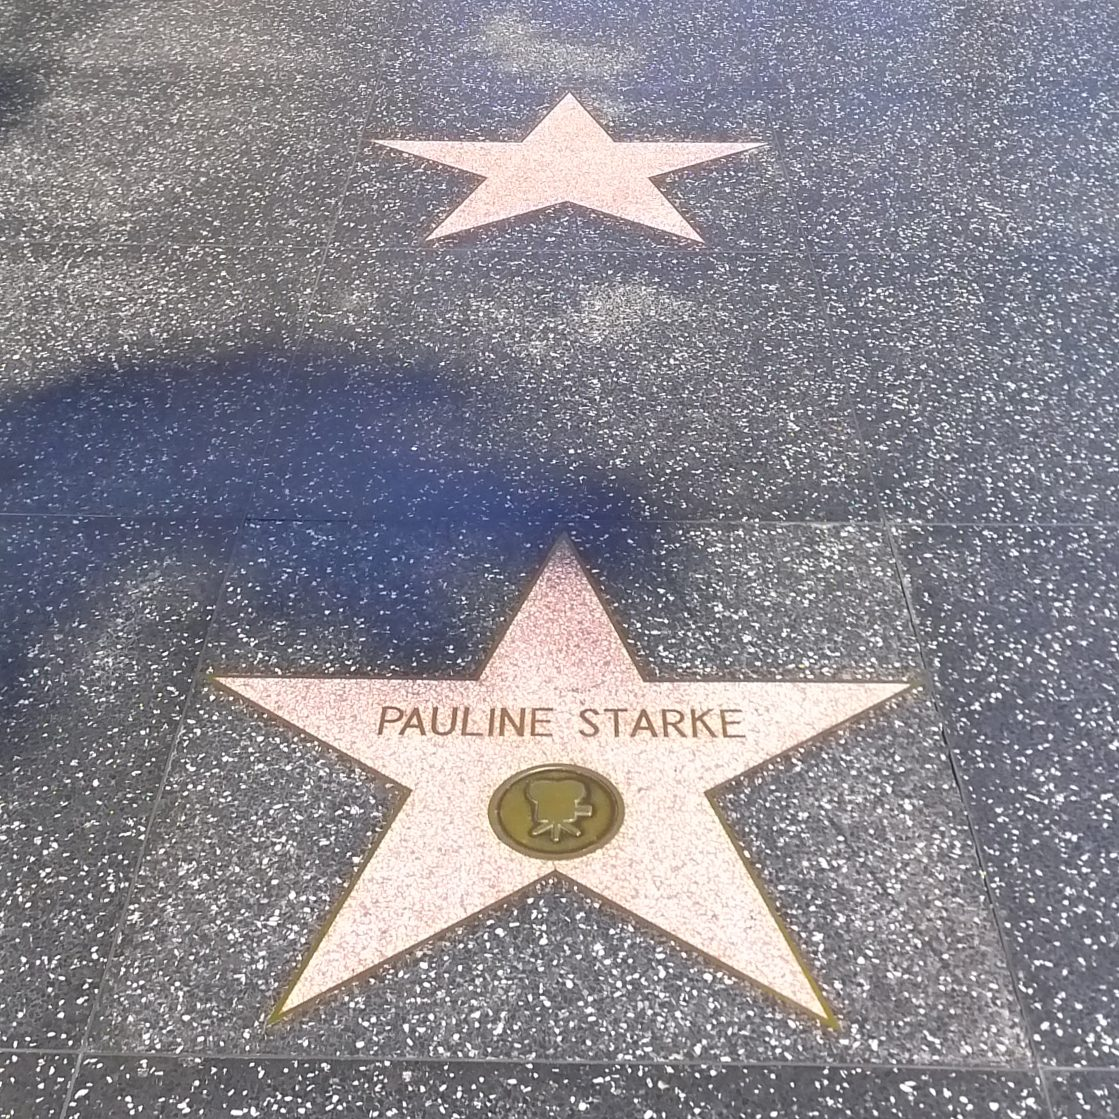 hollywood tour stars Walk of Fame